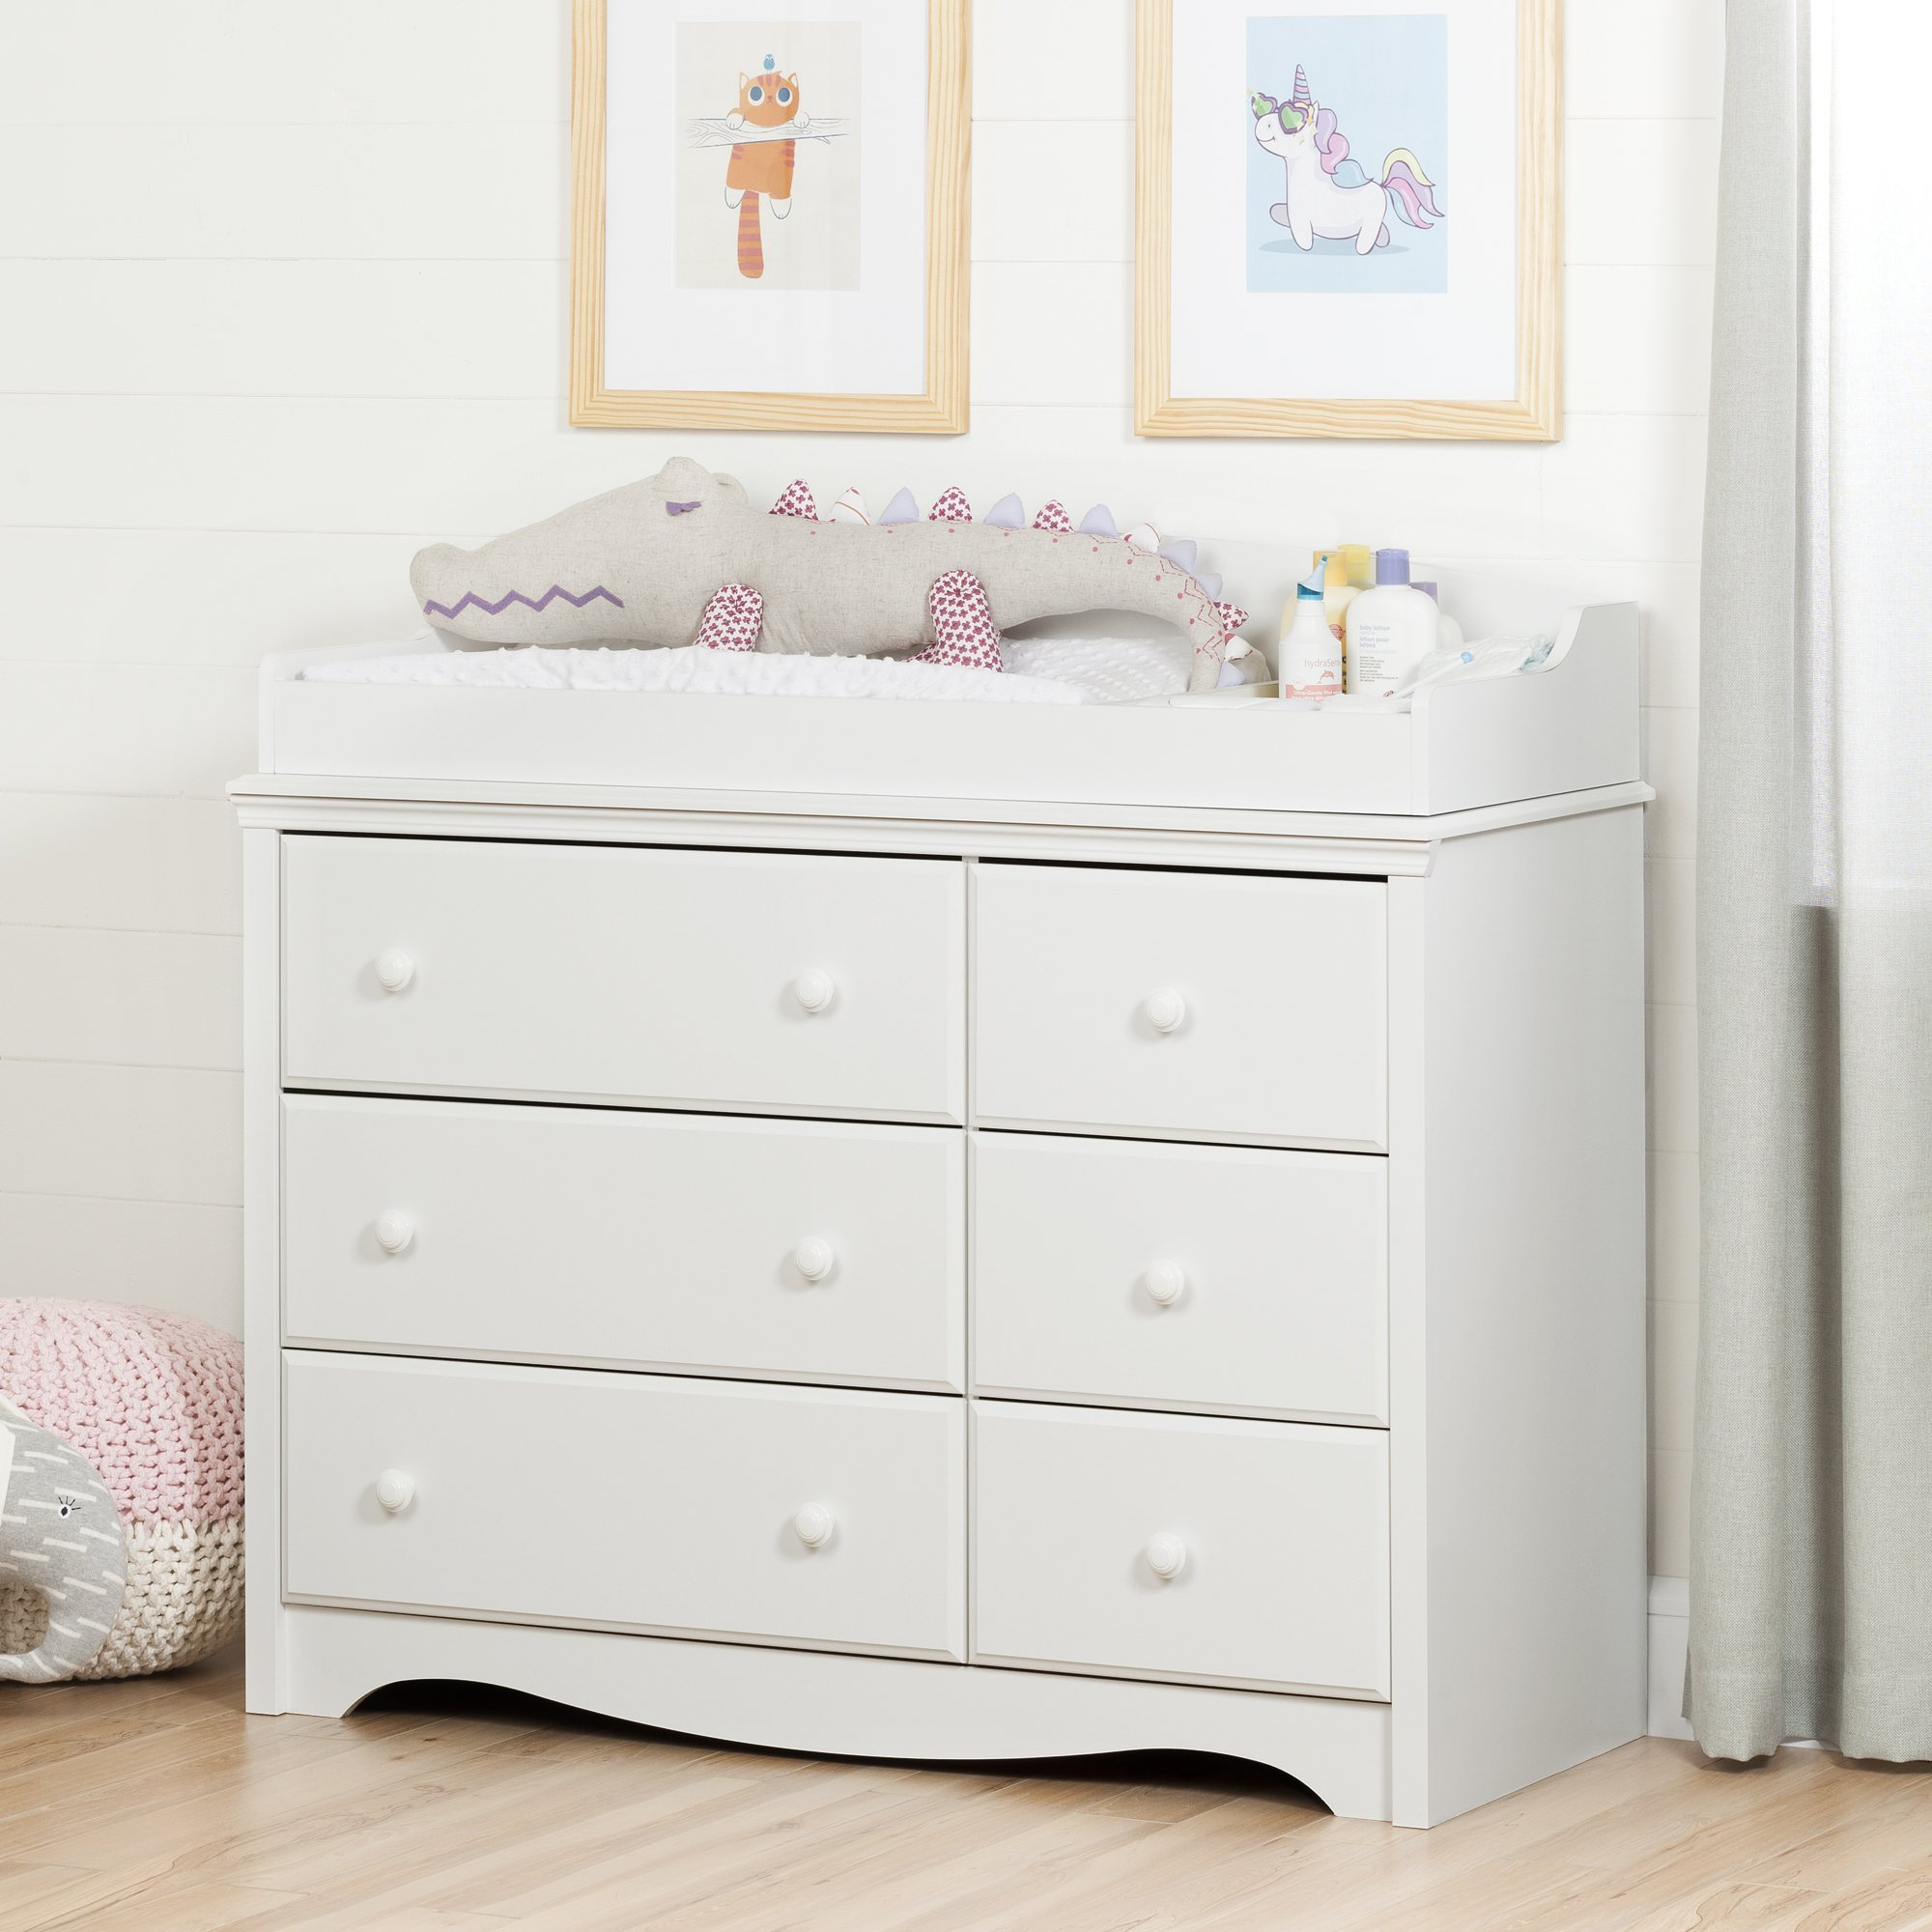 South Shore Furniture Angel Changing Table with 6 Drawers, Pure White